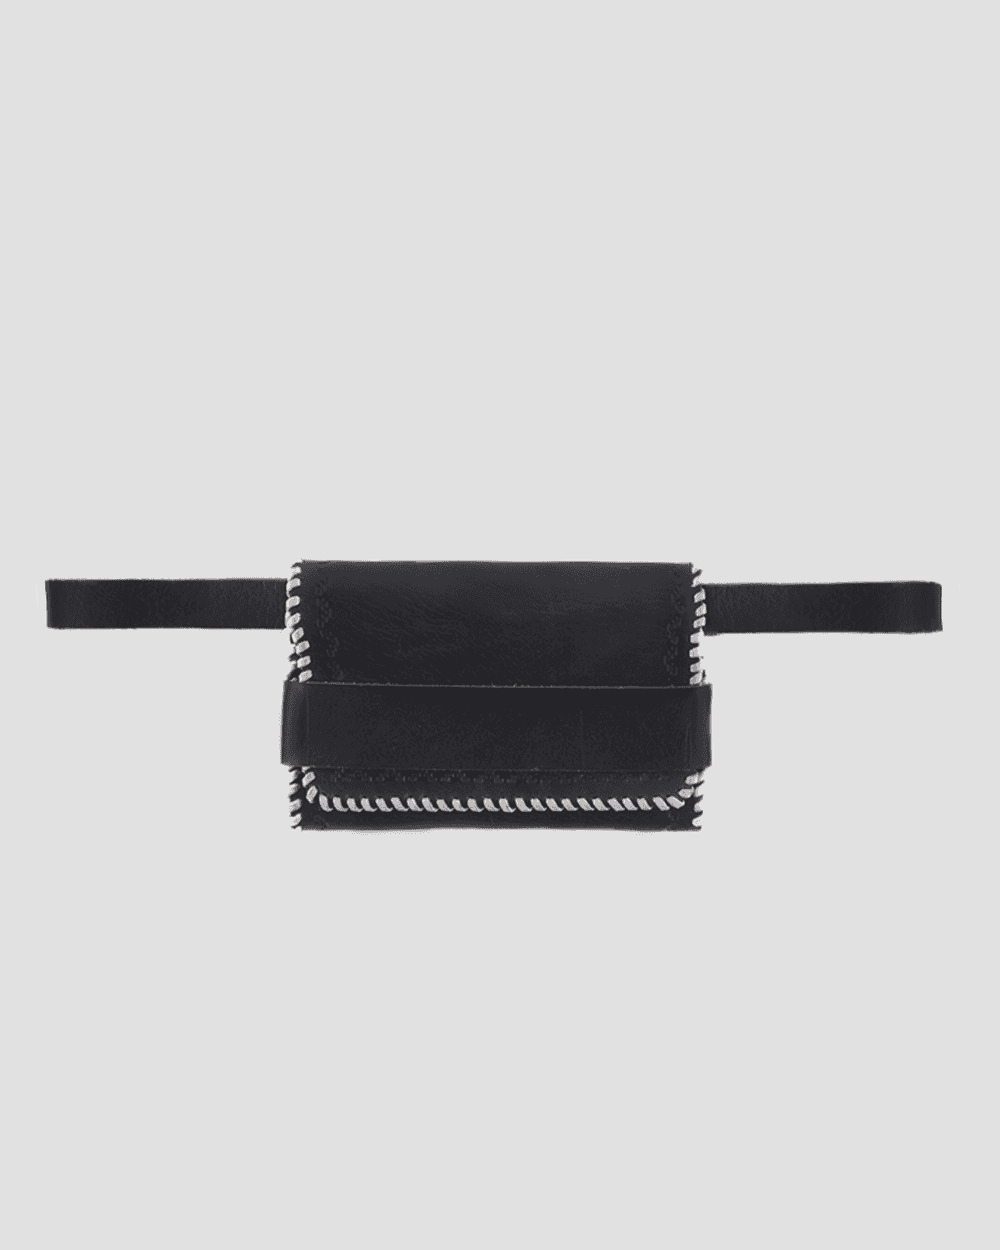 CAYCHO fanny pack BLACK